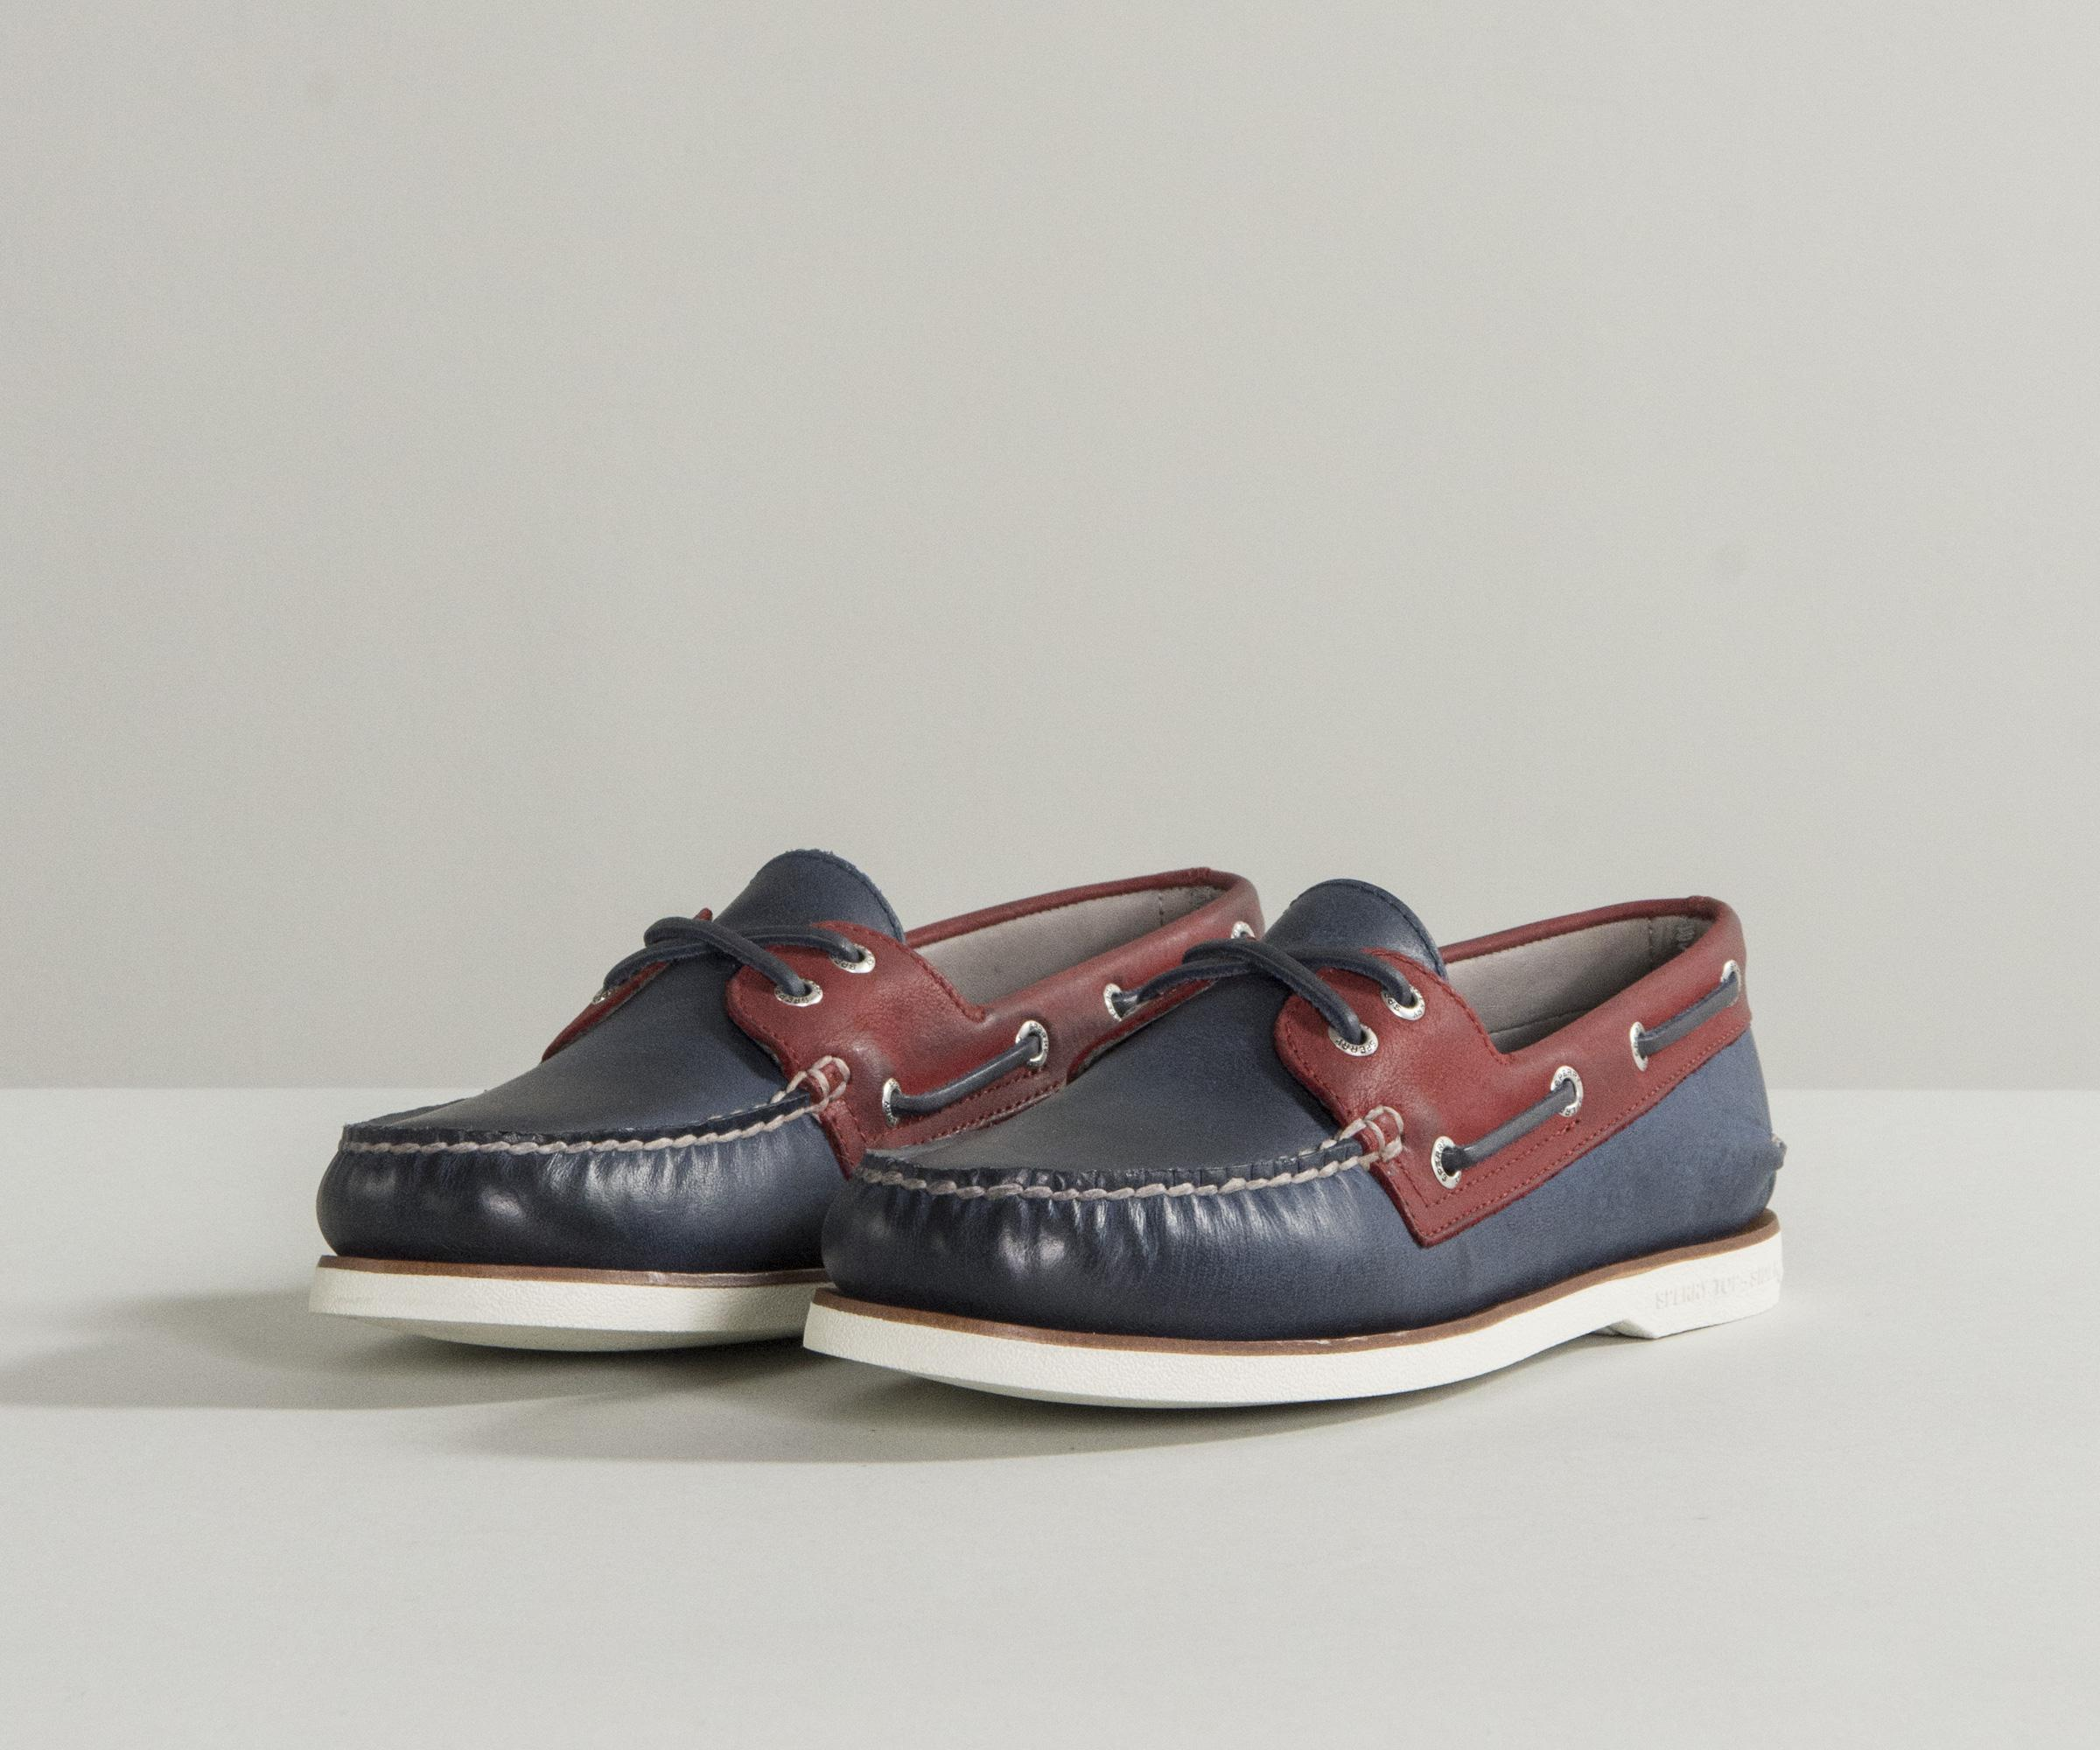 b0c8bced462 Sperry Top-Sider - Multicolor  top-sider  Gold Cup Luxury Deck Shoes. View  fullscreen